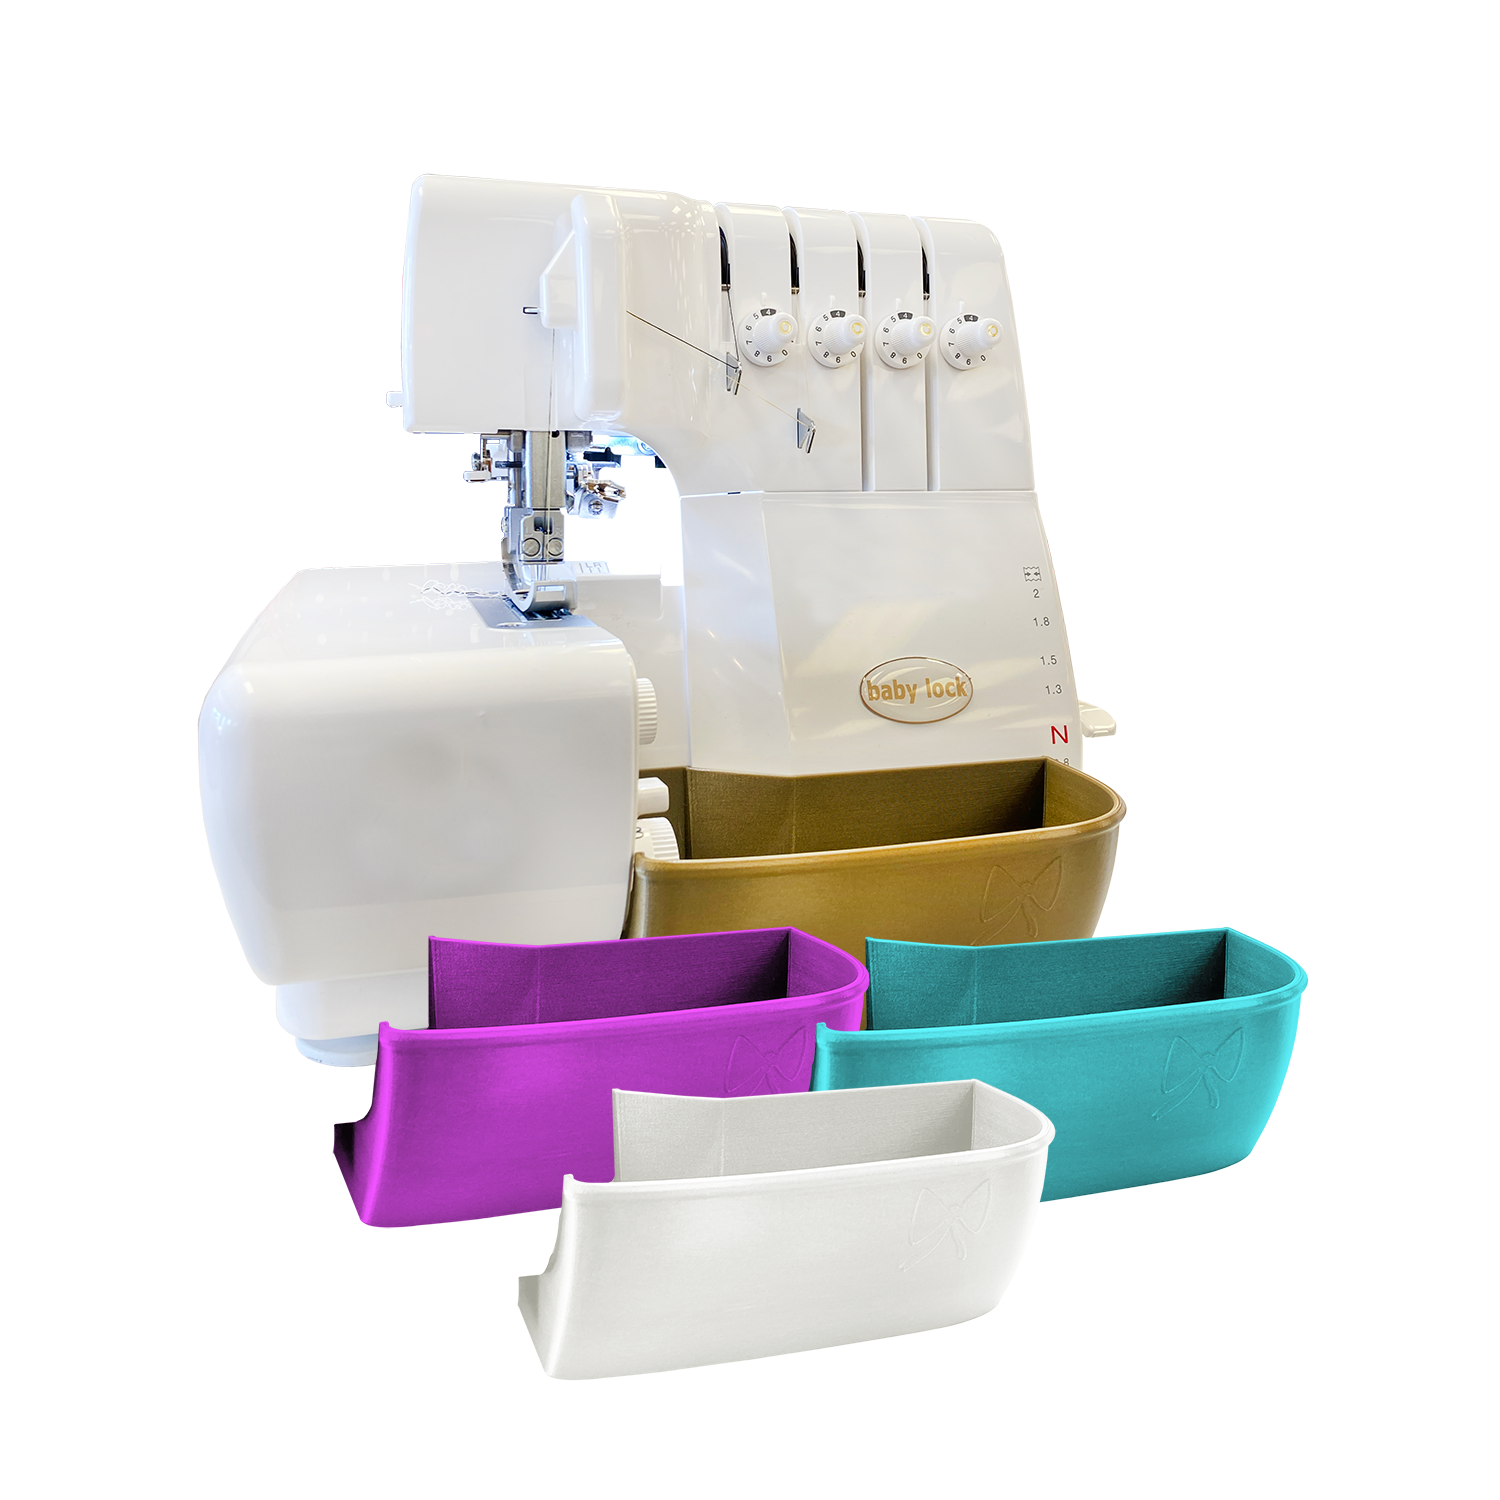 Serger Trim Bin for Baby Lock